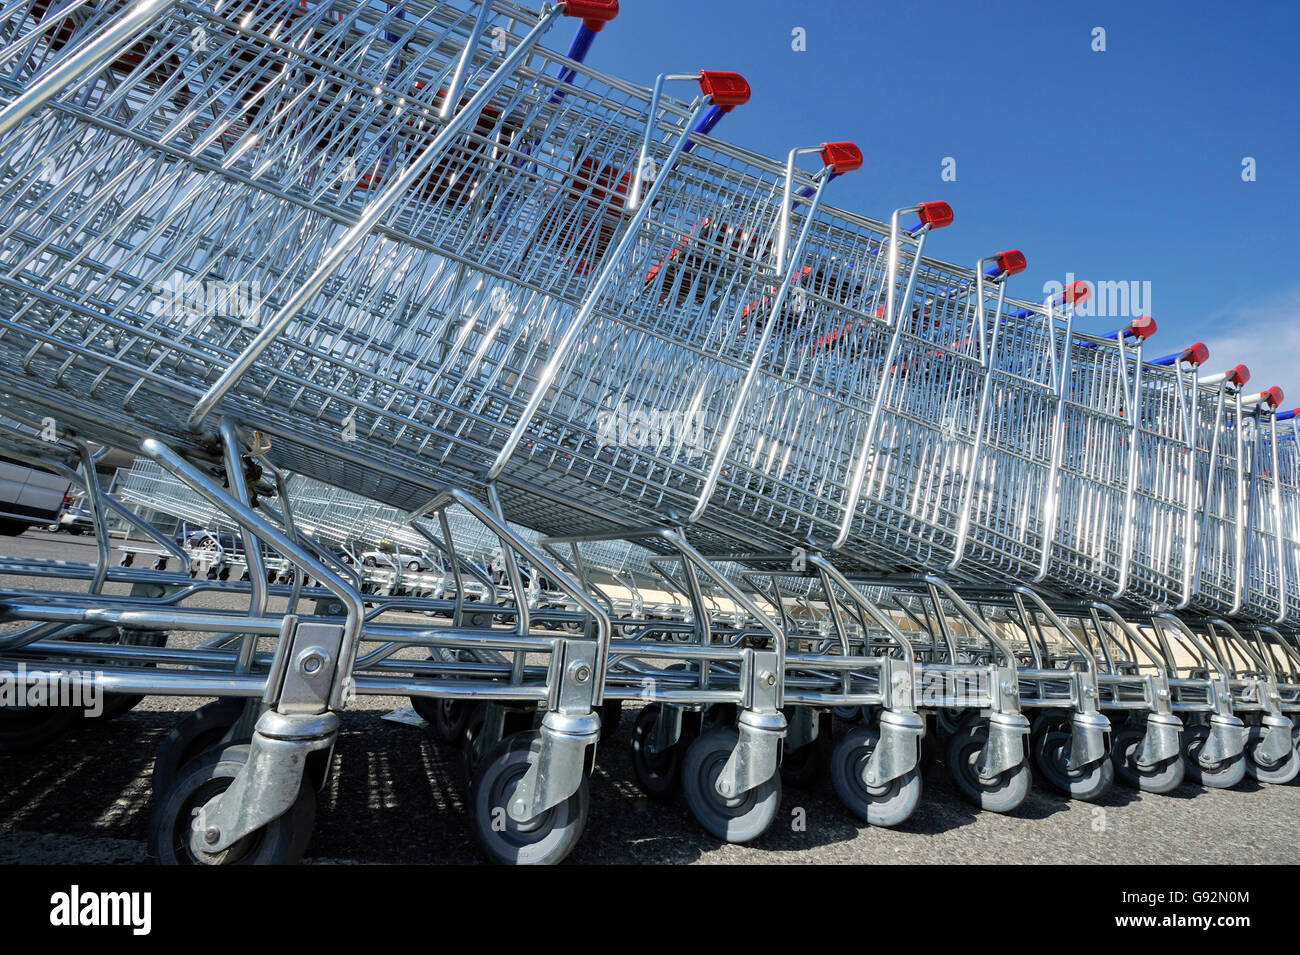 Shopping carts in a stack against a clear blue sky - Stock Image